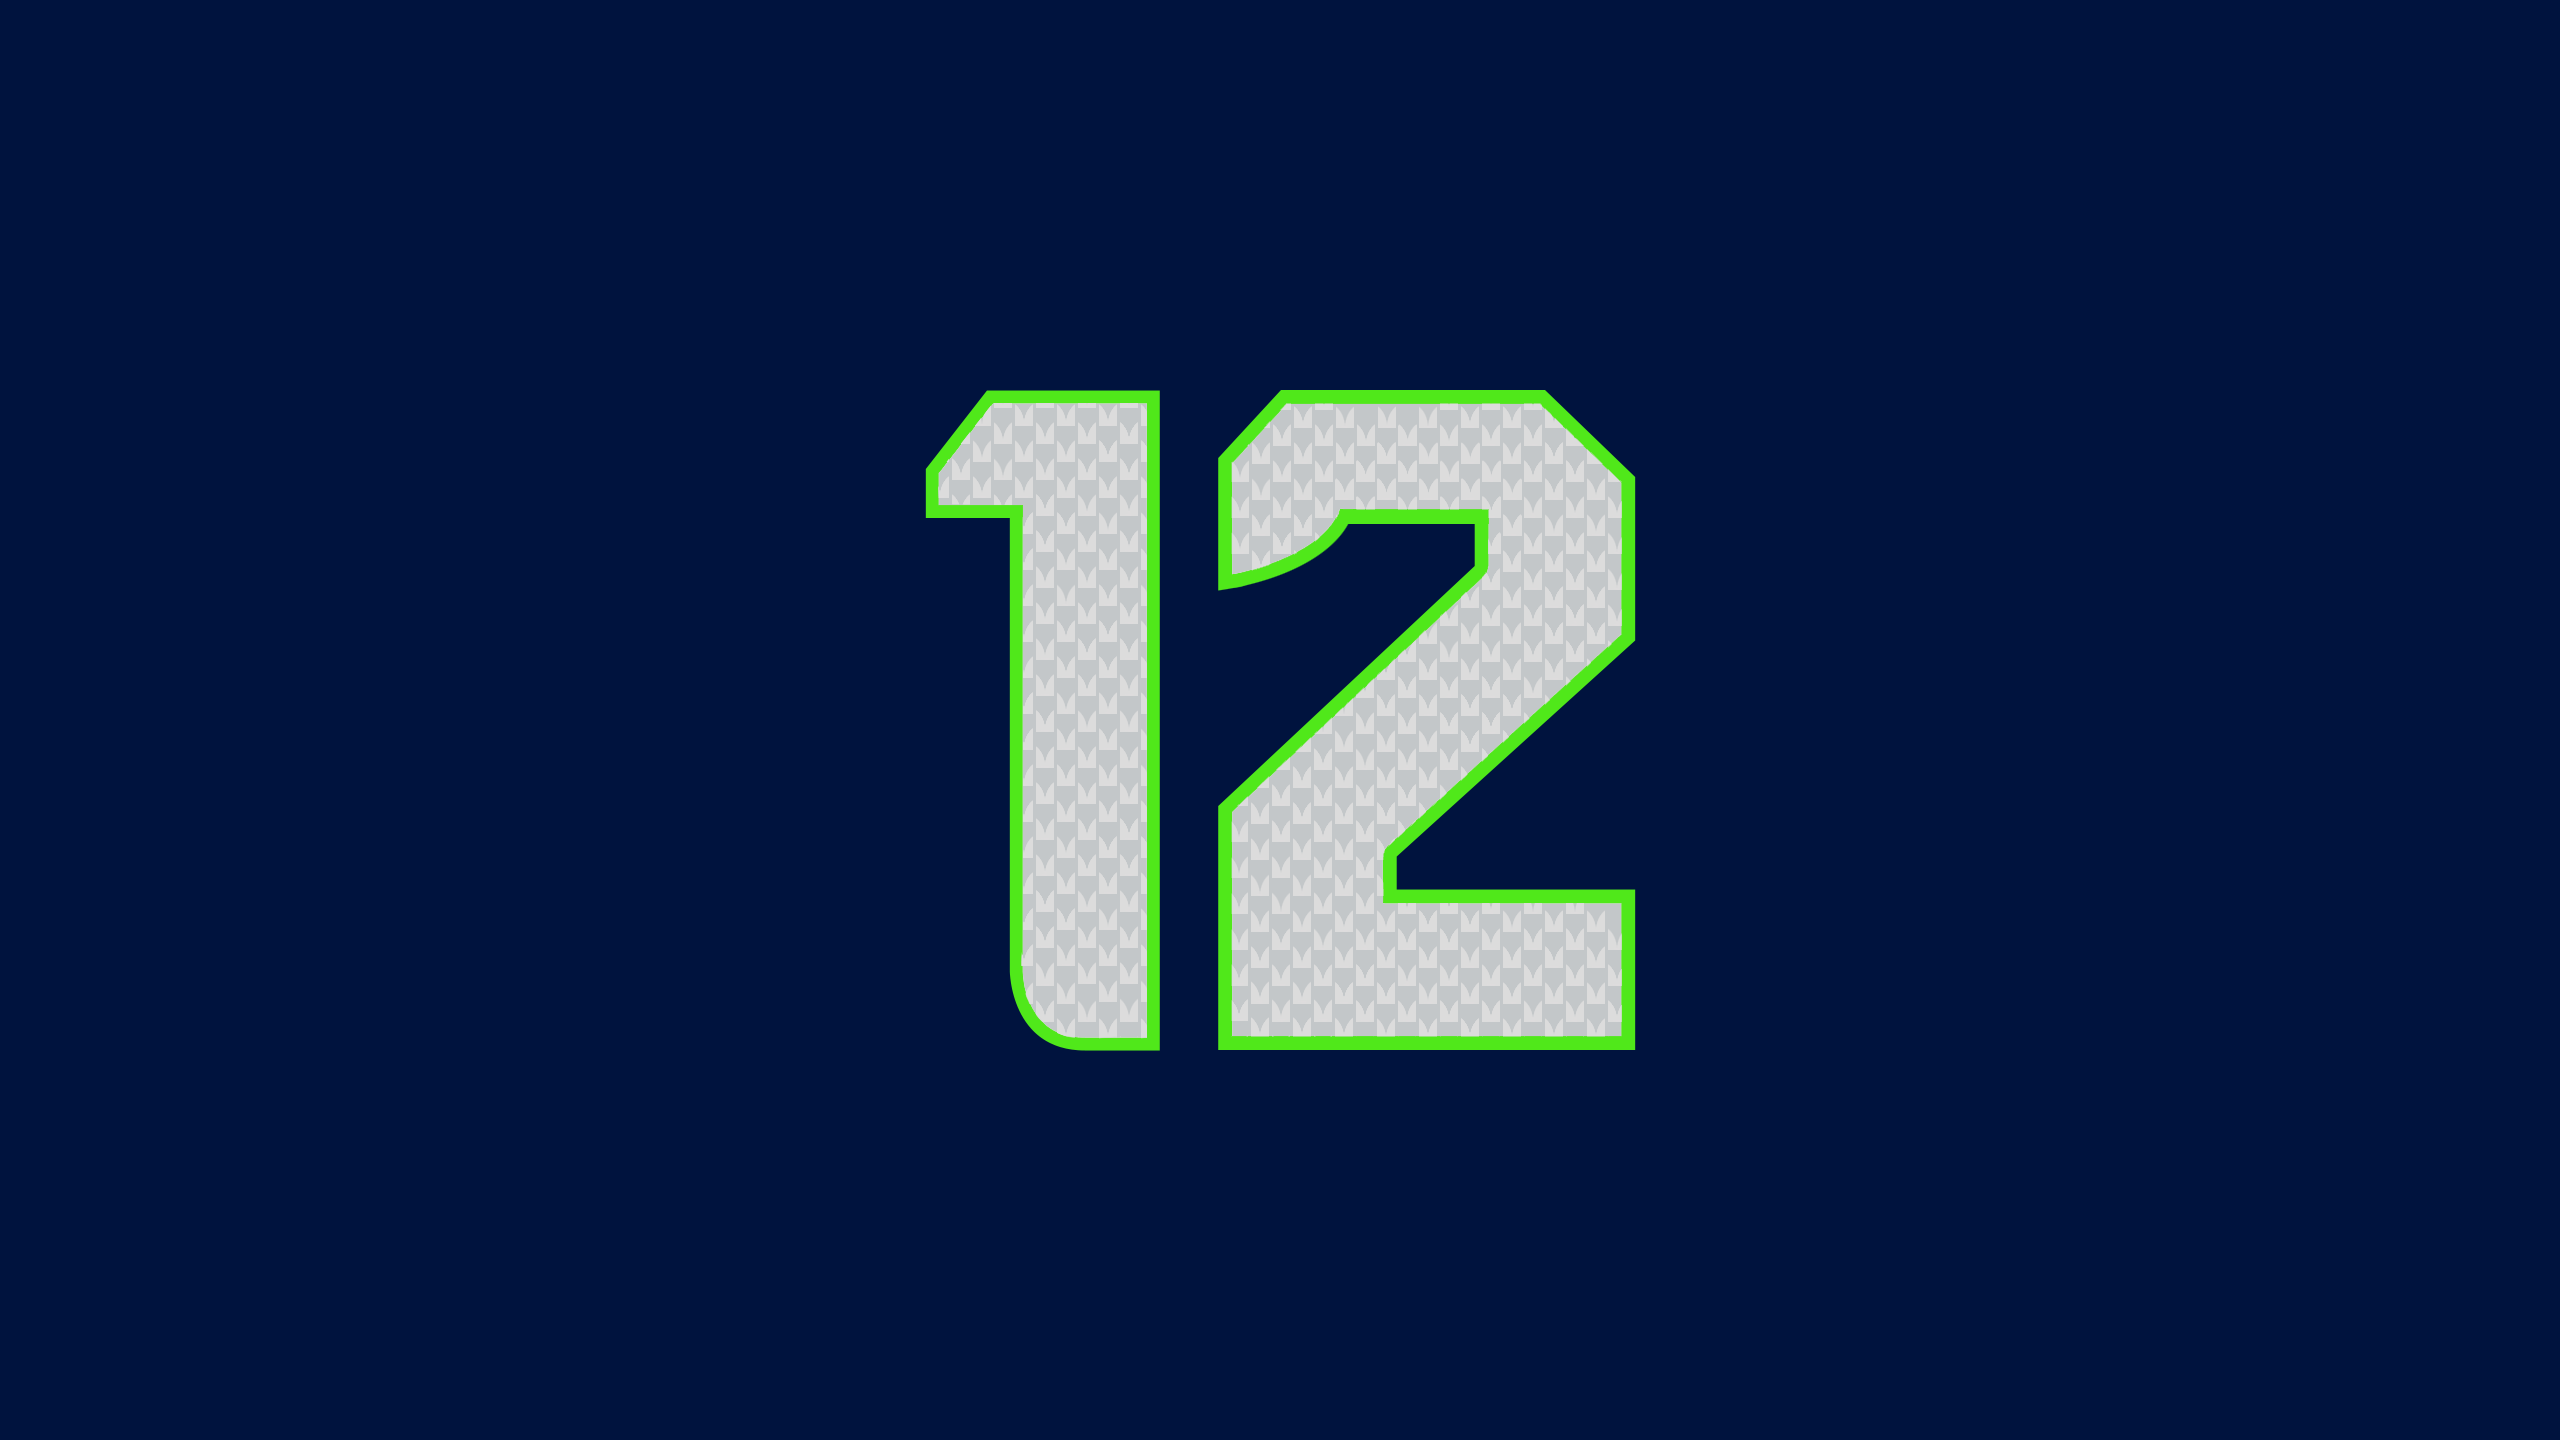 seahawks high resolution wallpaper - photo #19